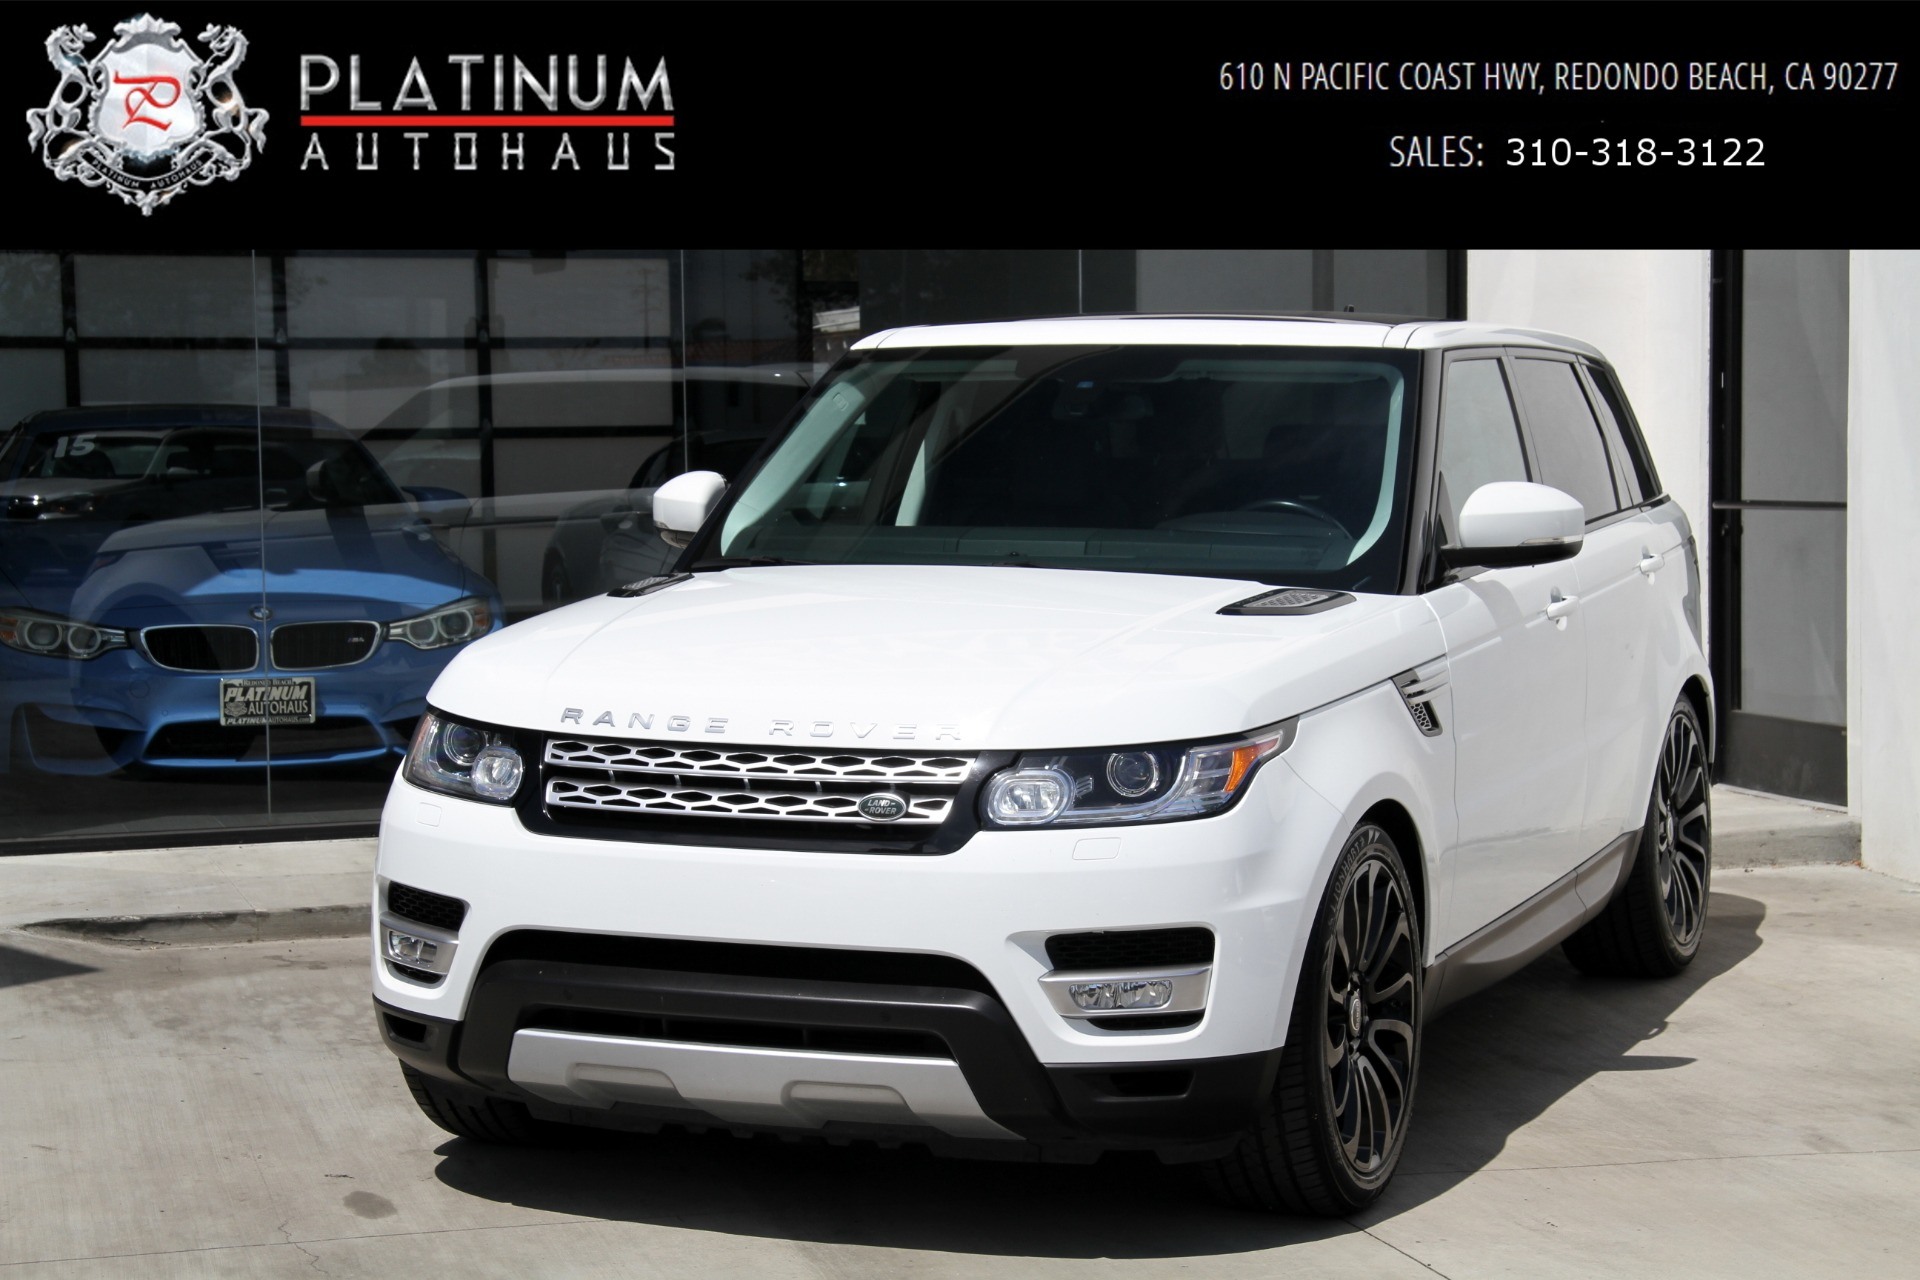 2015 Land Rover Range Rover Sport Hse Stock 6224 For